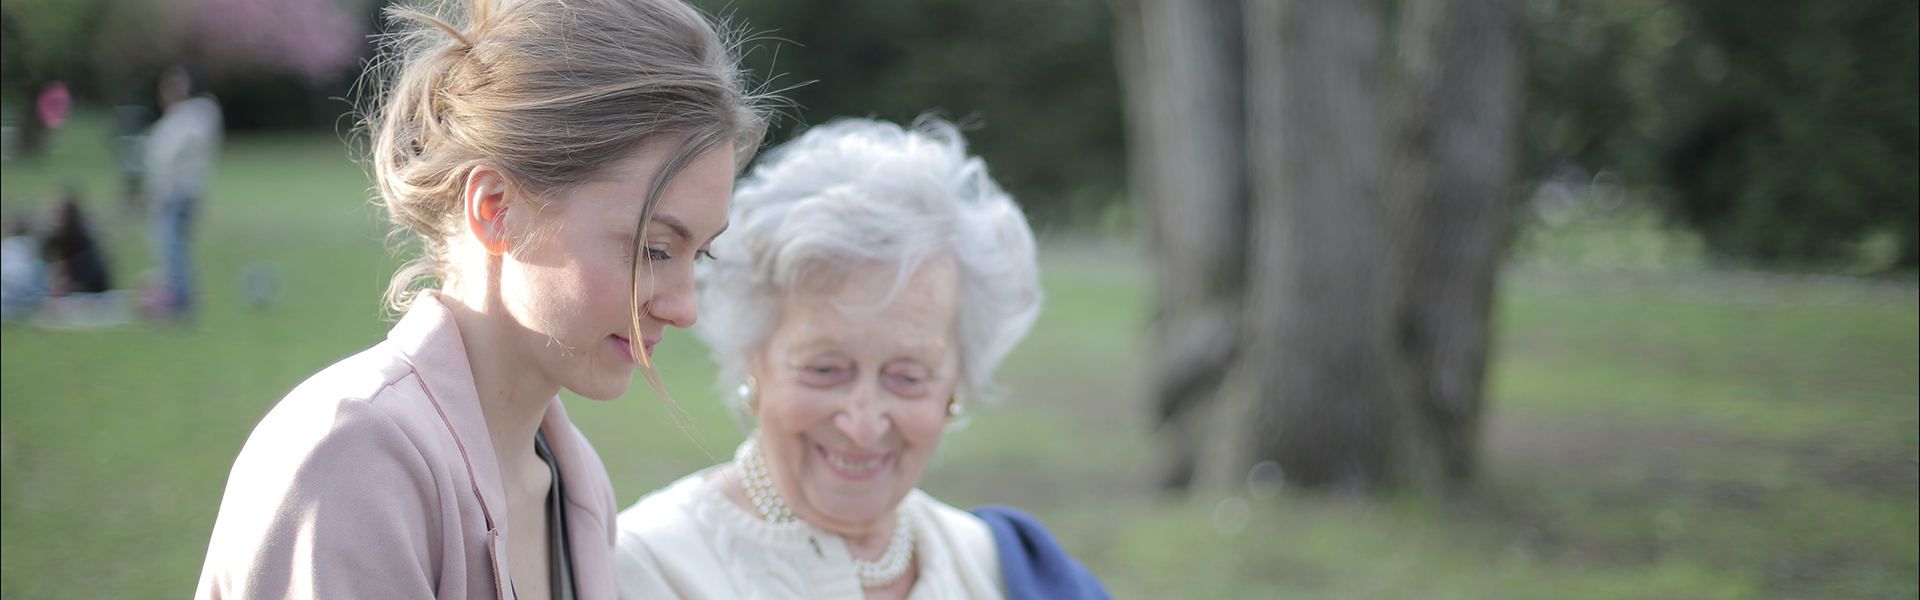 Free Stock photo of a teenage assisting an elderly woman on a bench in a park